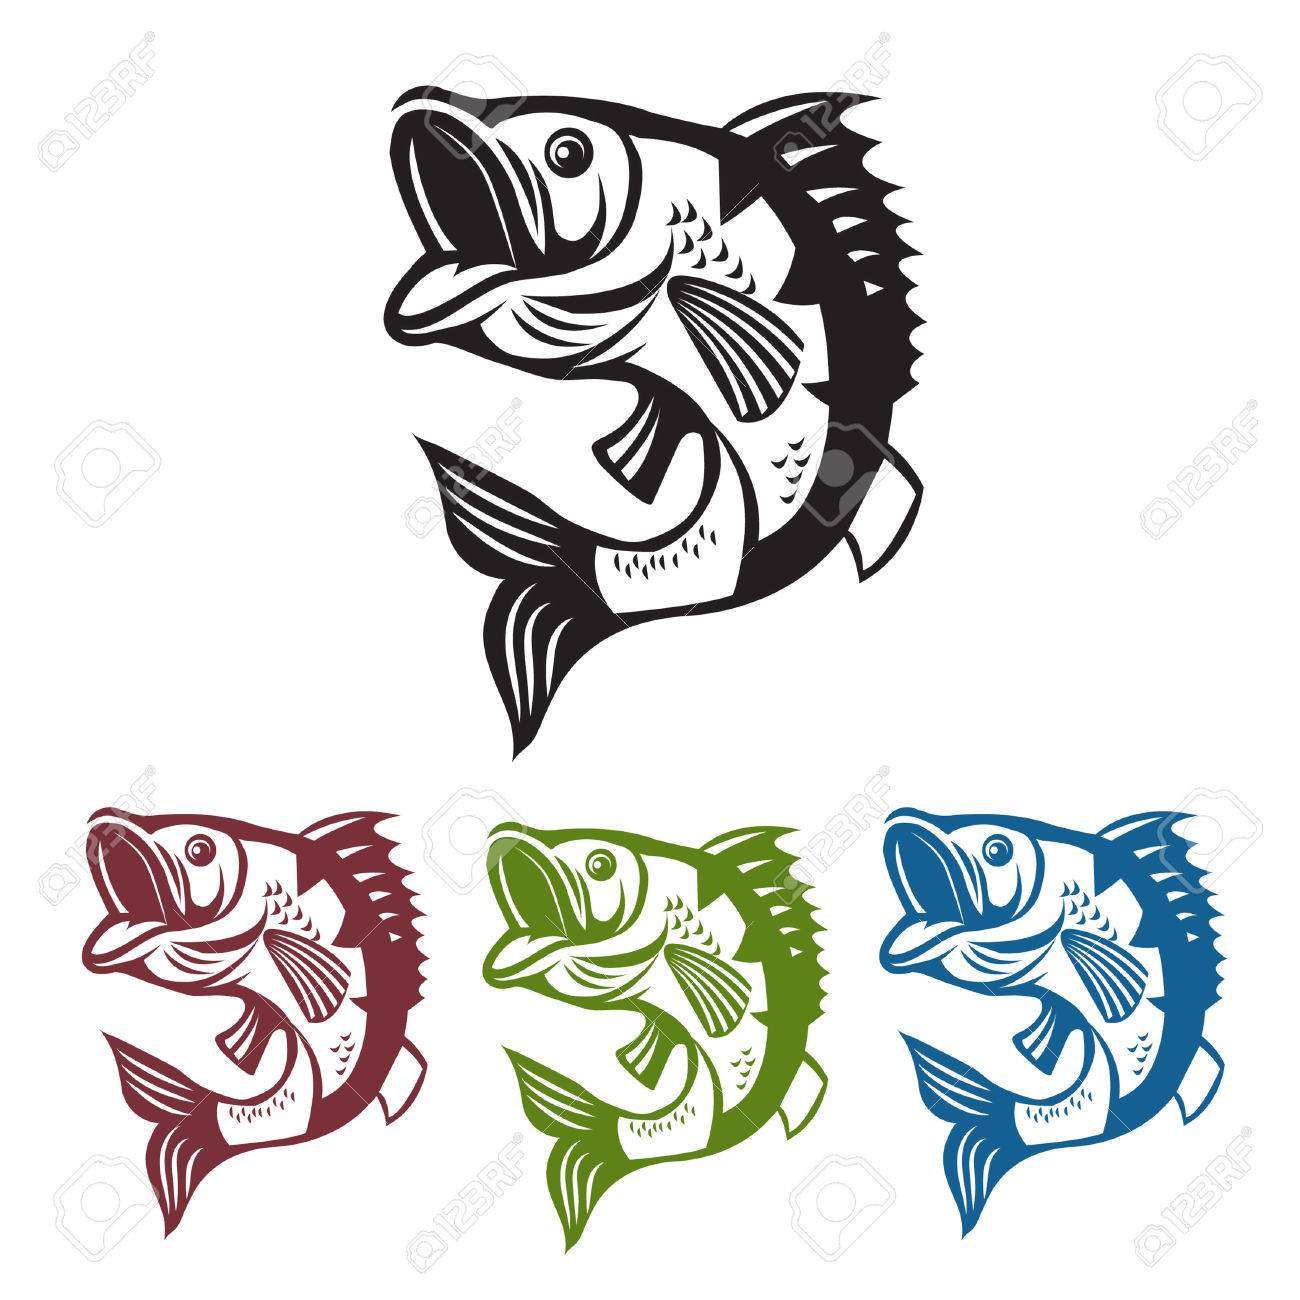 catching bass fish vector fish color graphic fish fish on a white background